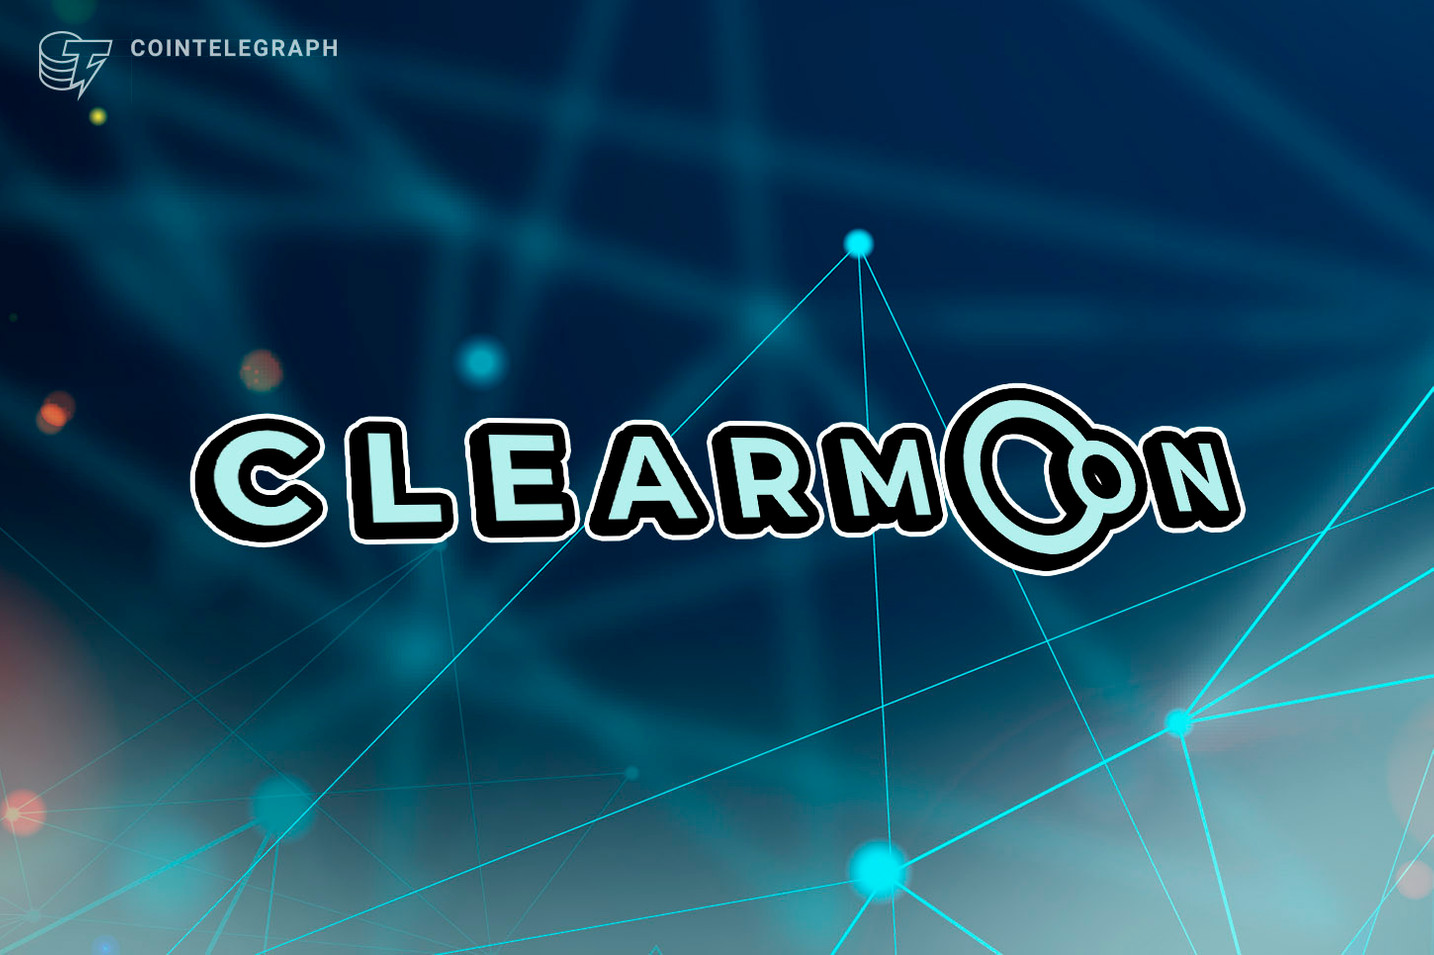 ClearMoon network is here to educate